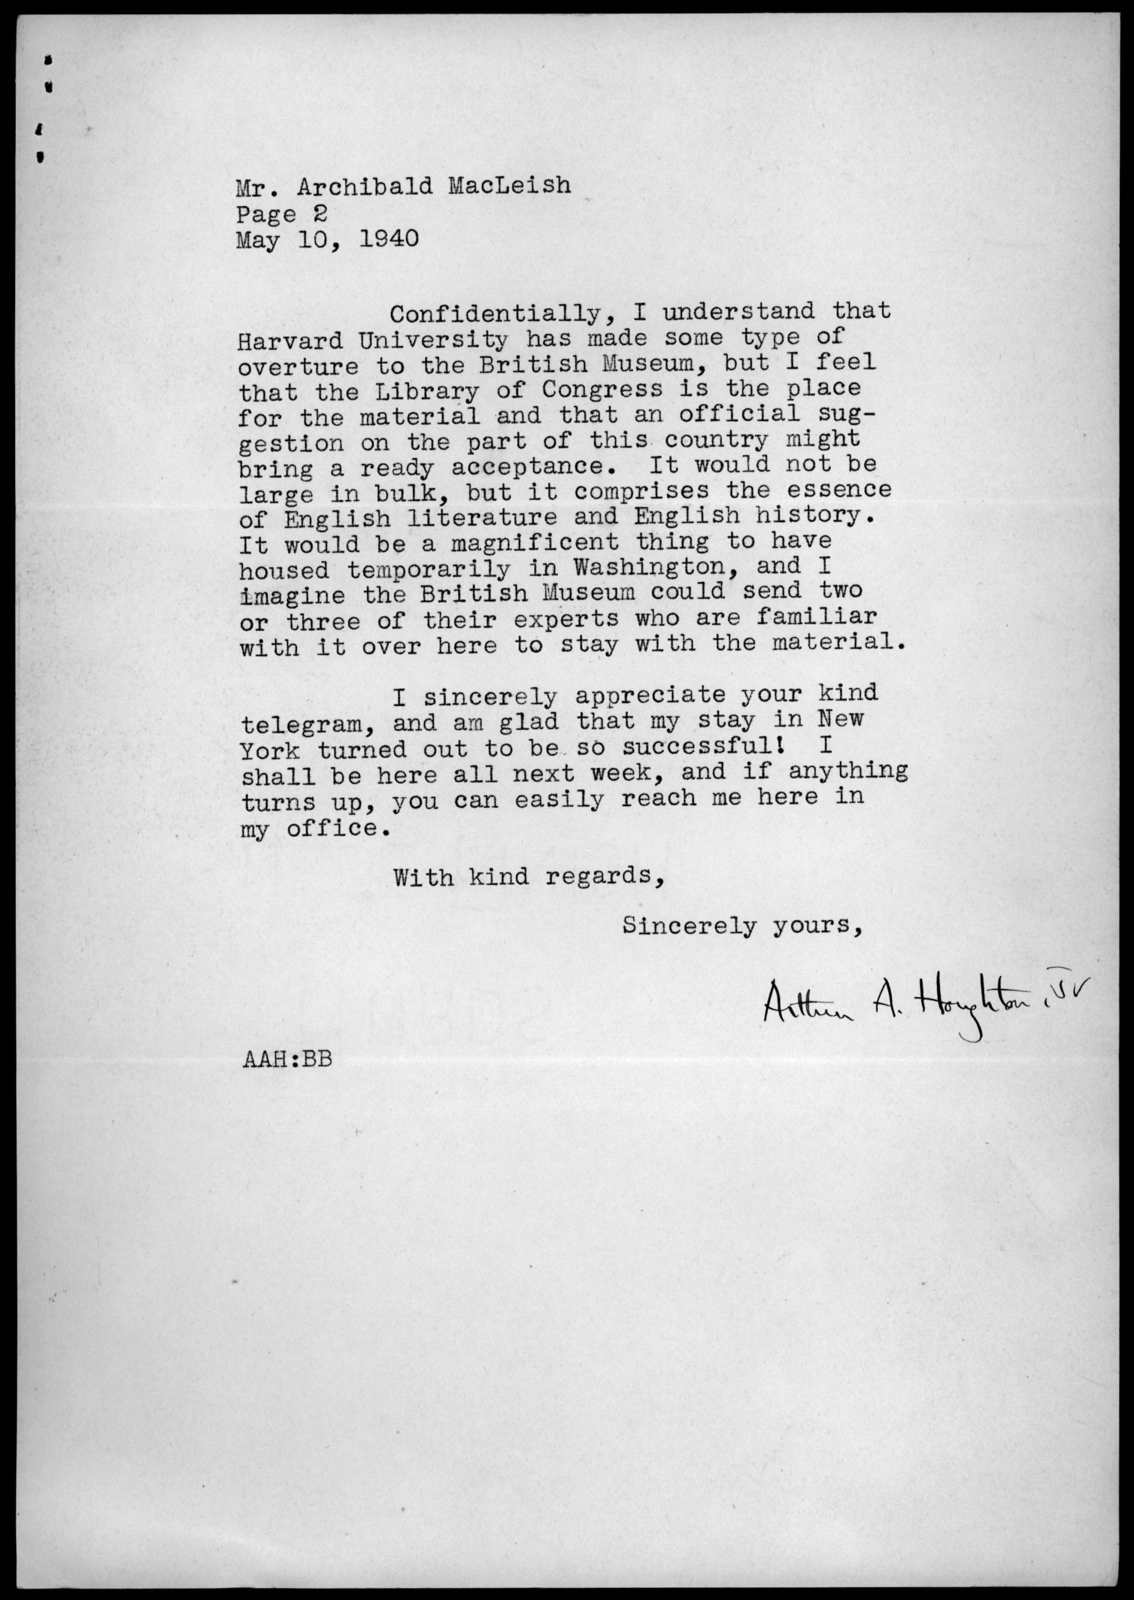 Letter from Arthur A. Houghton, Jr., to Archibald MacLeish, May 10, 1940